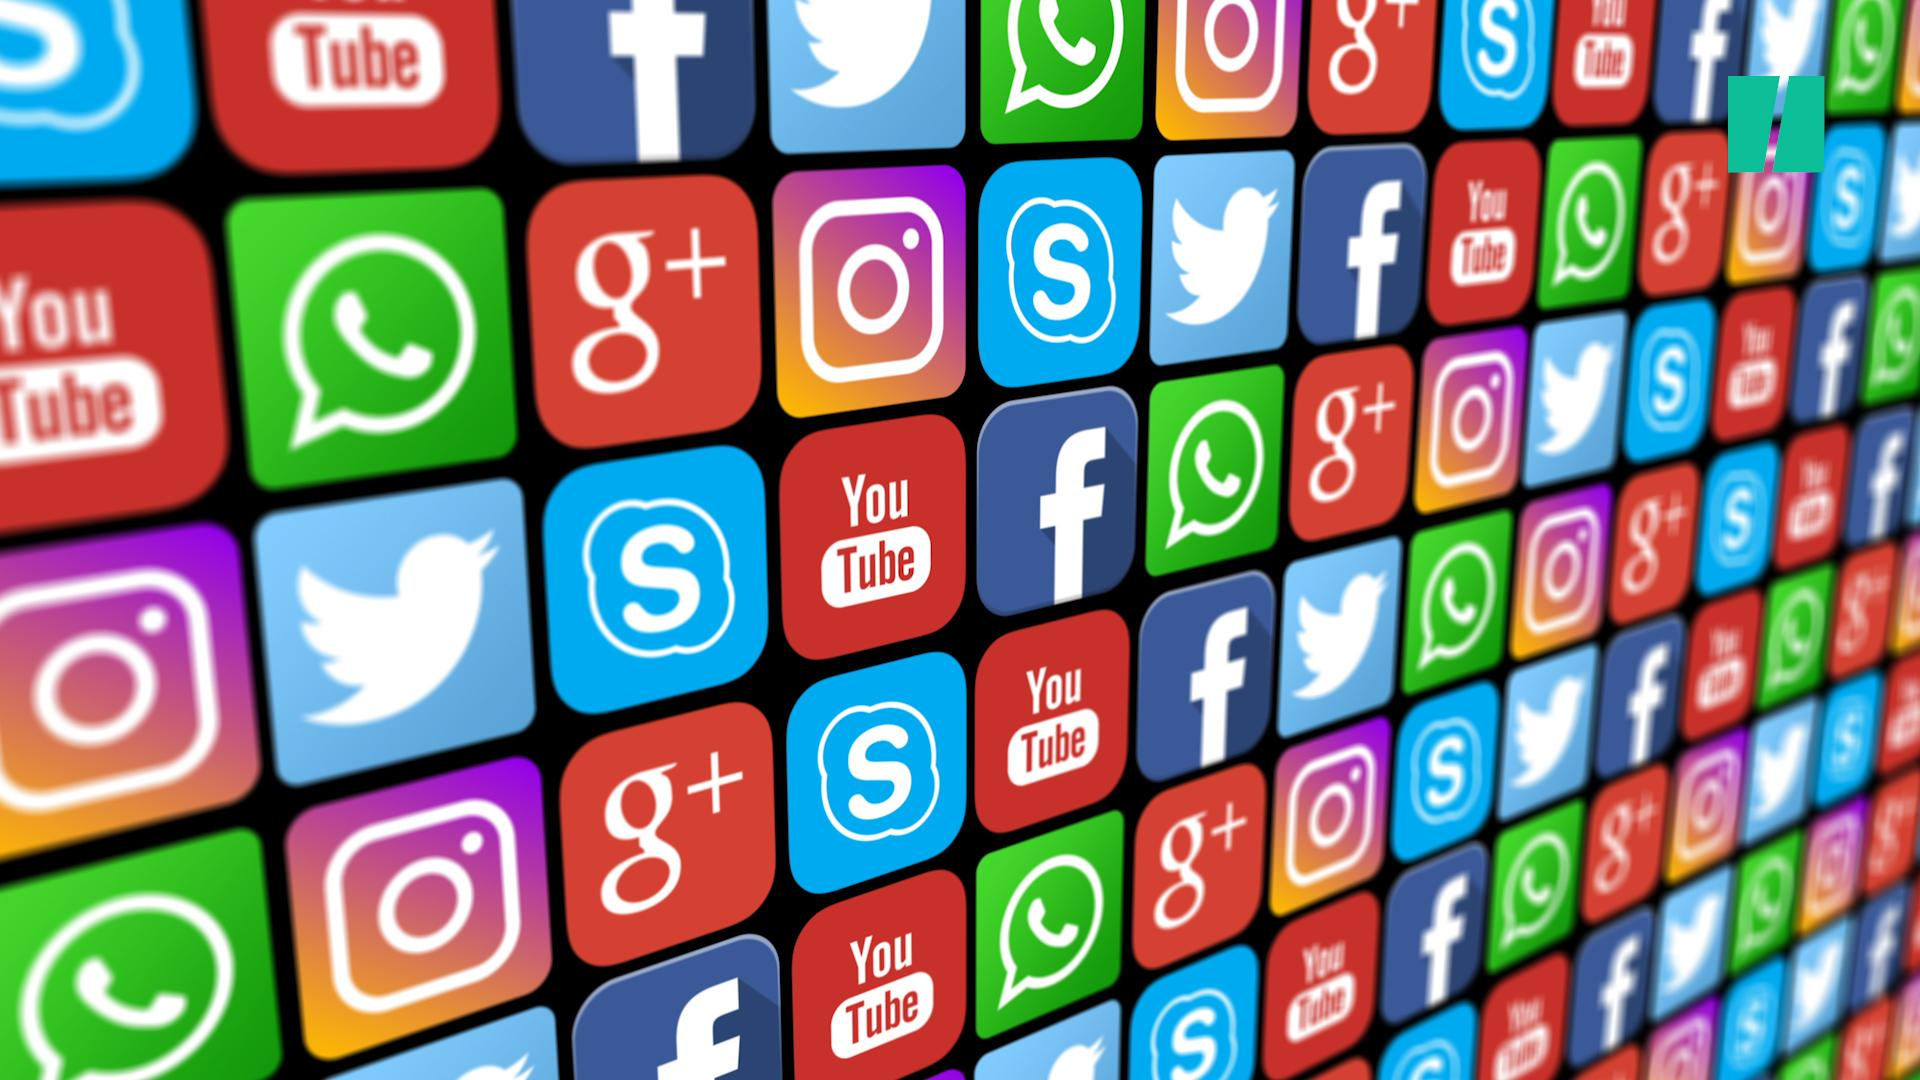 Why The Social Media Giants Could Be In Big Trouble